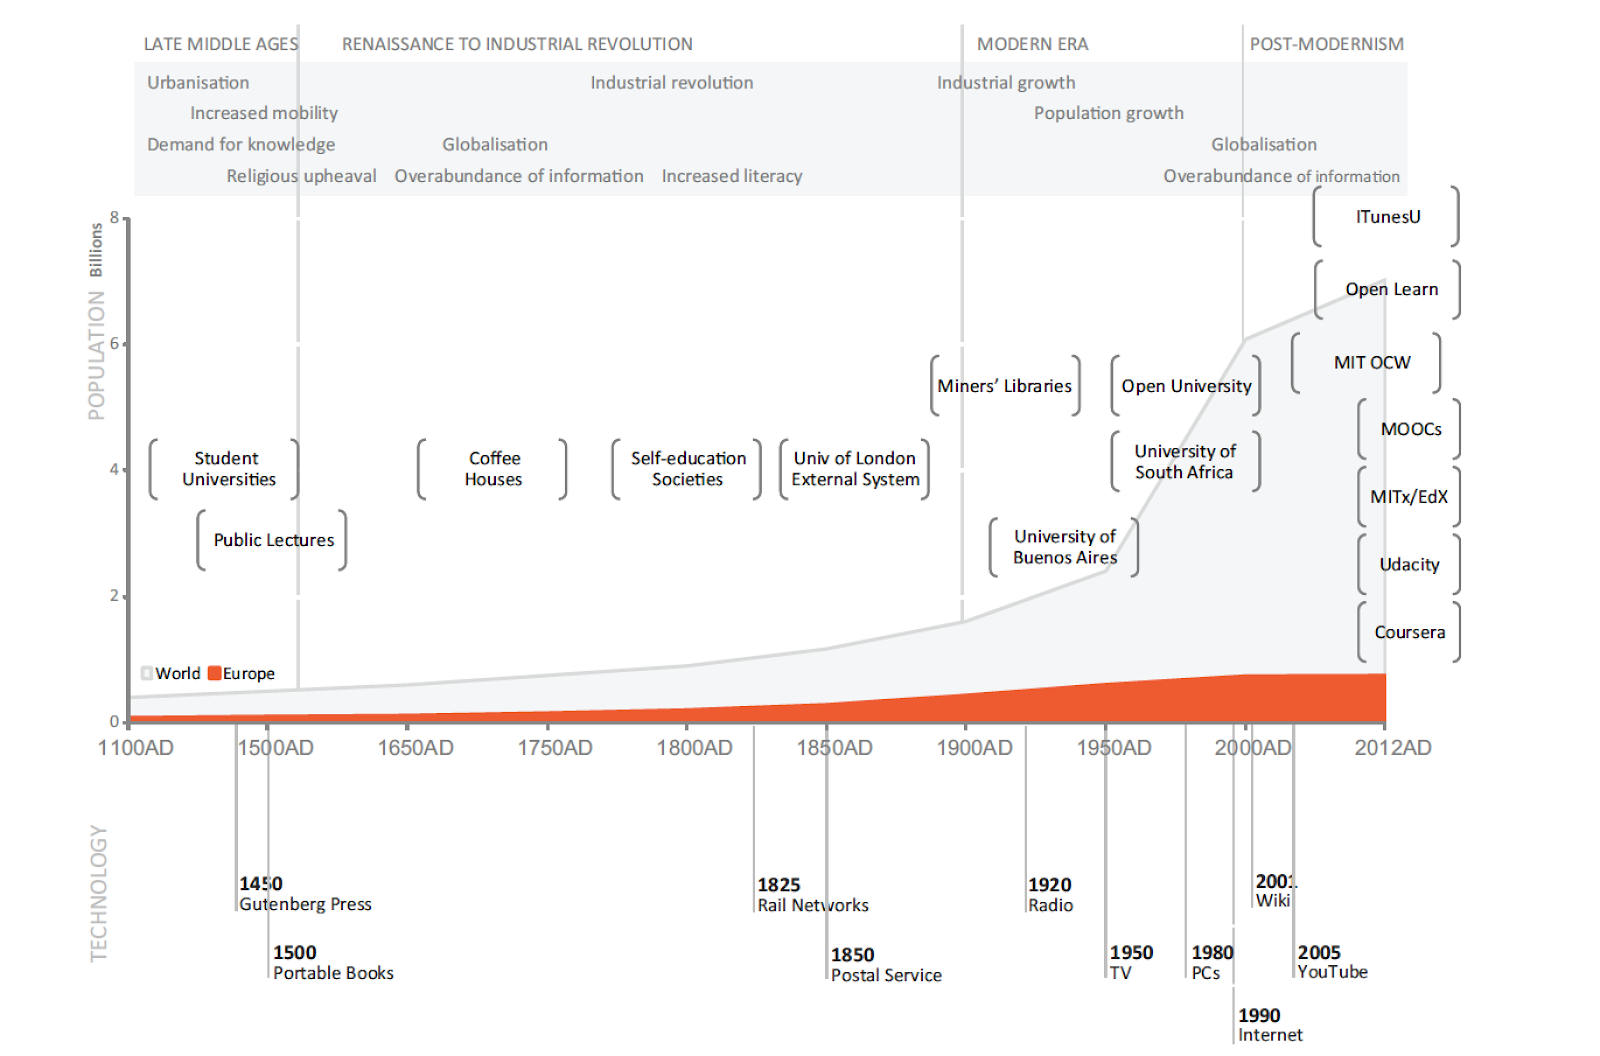 complex timeline diagram depicting population in billions on the left, and a variety of open education concepts across the bottom. These include student universities, coffee houses, self-education societies, university of london external system, miners' libraries, open university, university of south africa, iTunesU, open learn, MIT OCW, MOOCs, MIT/edX